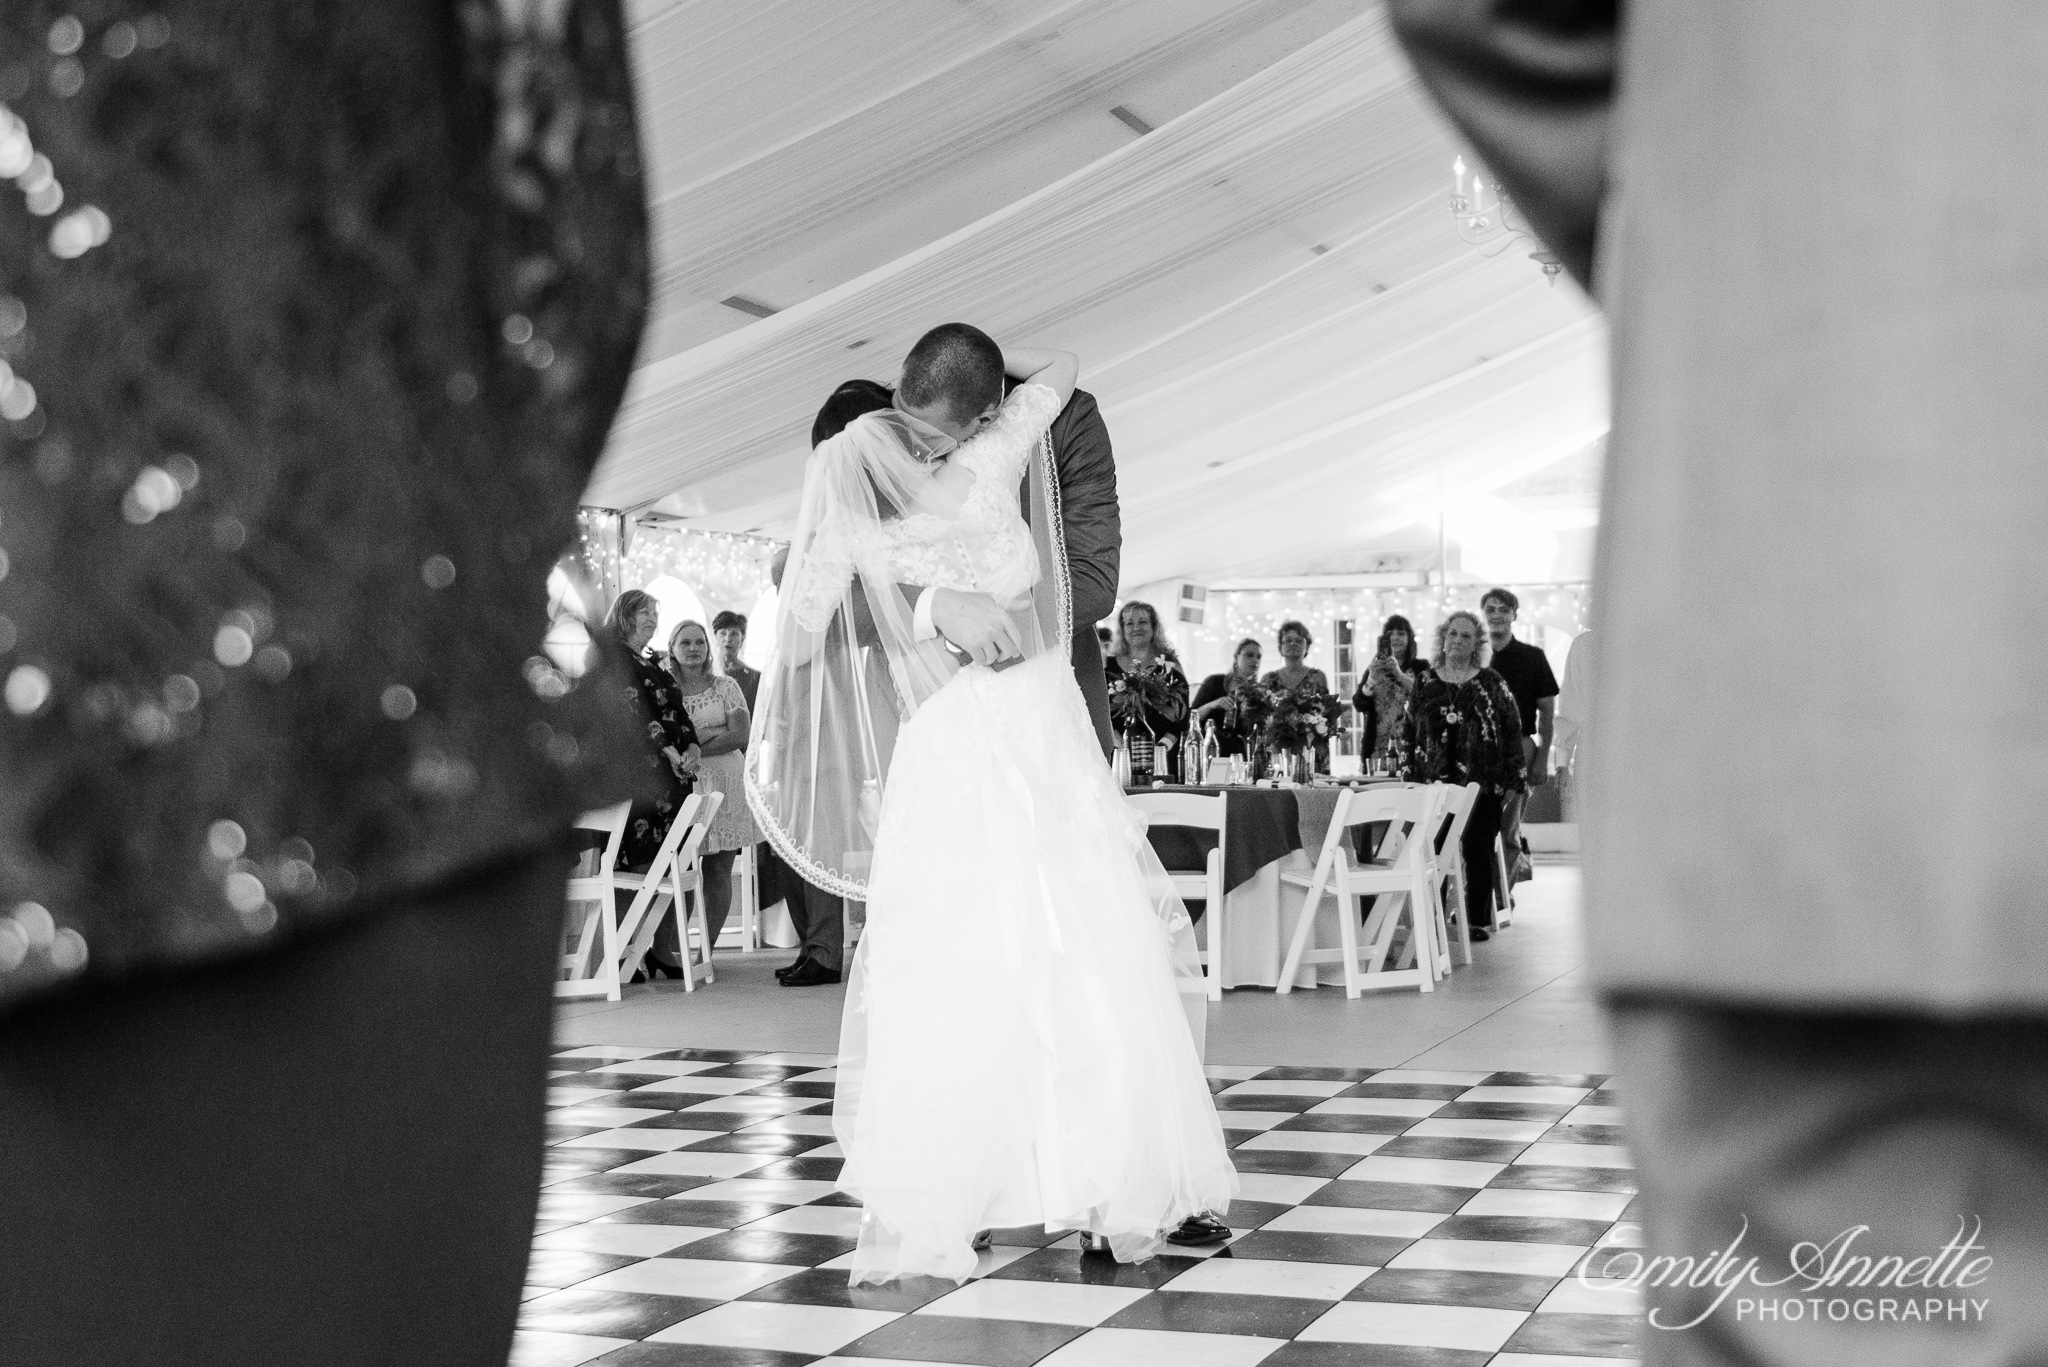 A bride and groom share their first dance as husband and wife during a country wedding reception at Amber Grove near Richmond, Virginia